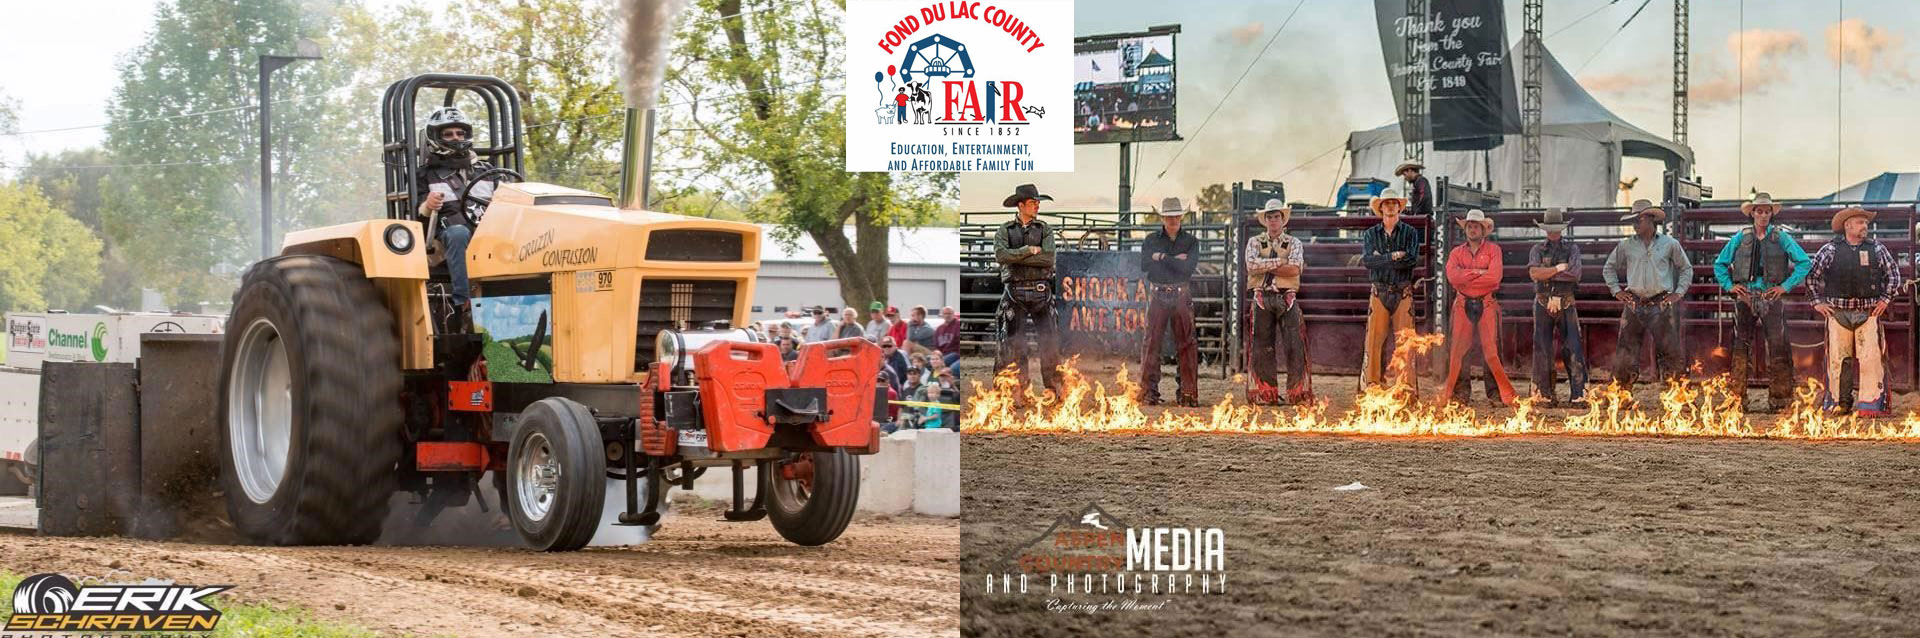 CONTEST: Fond du Lac County Fair Tractor & Truck Pull AND MORE!